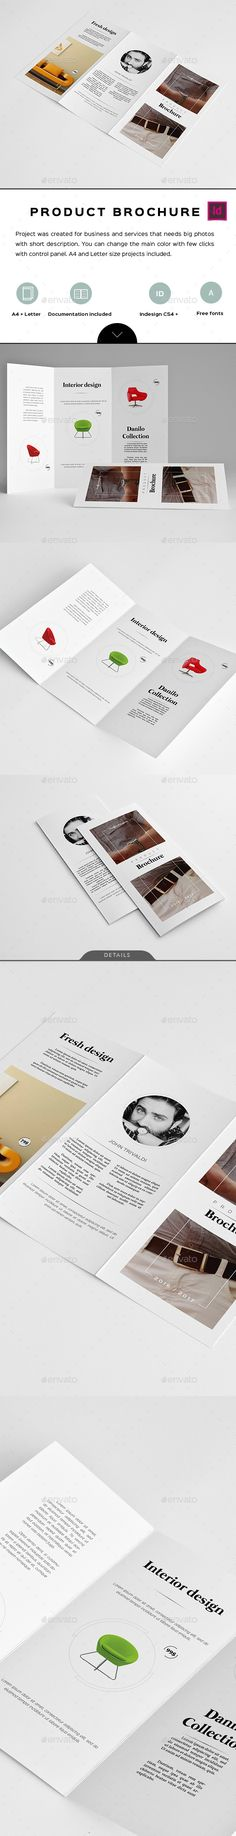 Product Trifold Brochure Template InDesign INDD